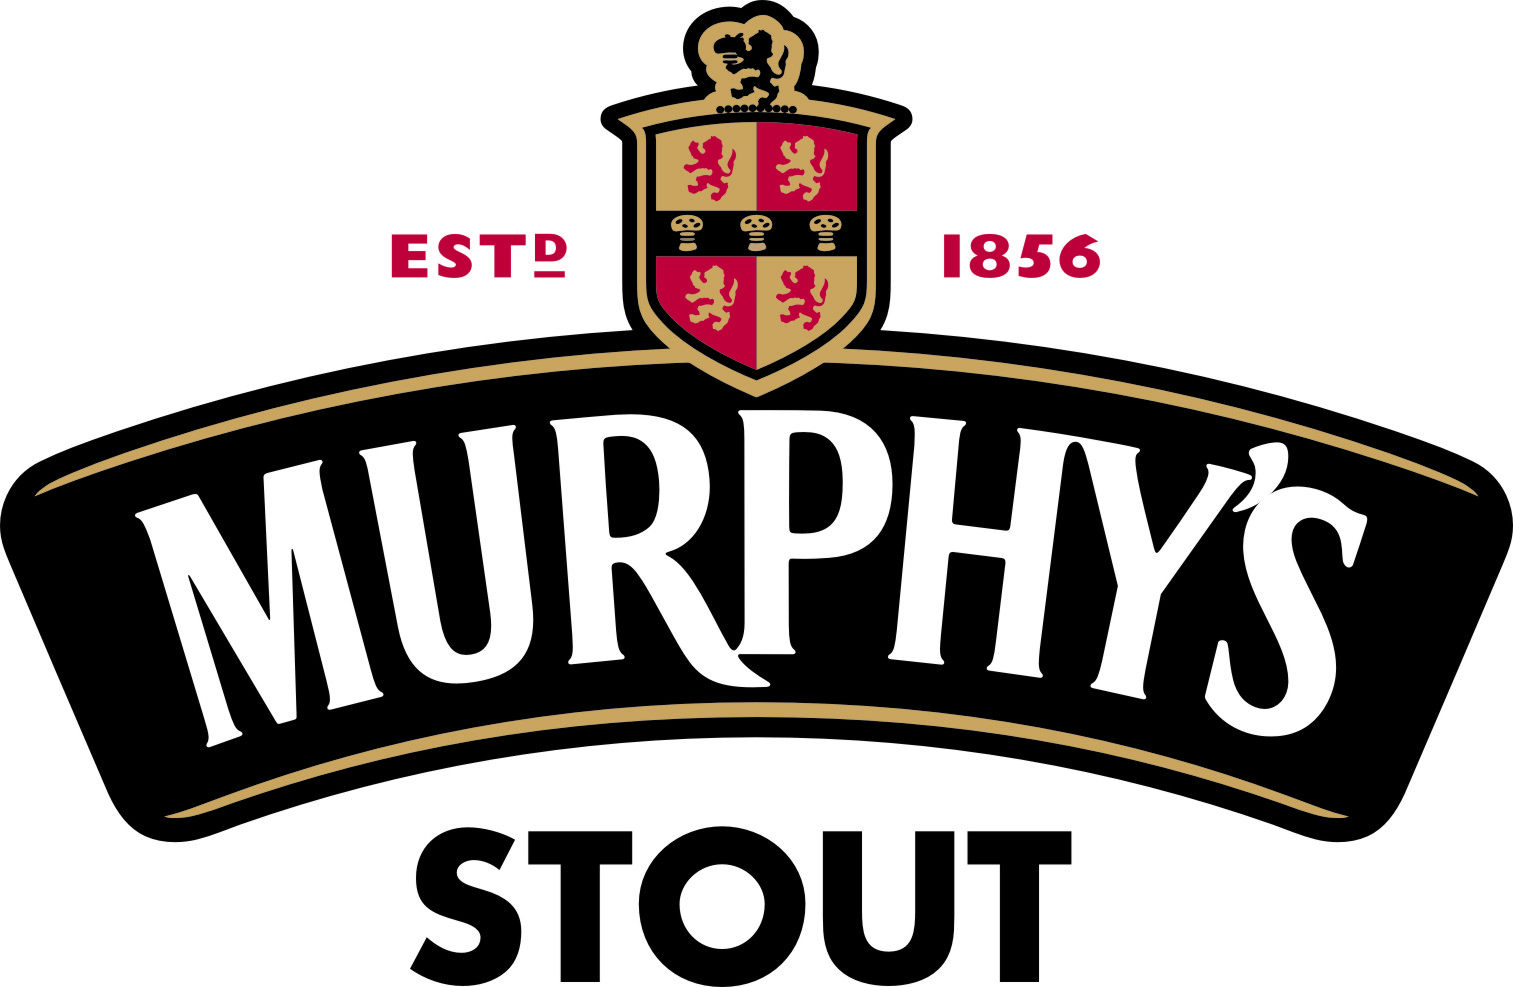 murphys brewery Murphy's brewery was a brewery founded in cork, ireland in 1856 by james jeremiah murphy (james j murphy) it was known as lady's well brewery until it was purchased by heineken international in 1983, when the name changed to murphy brewery ireland ltd.